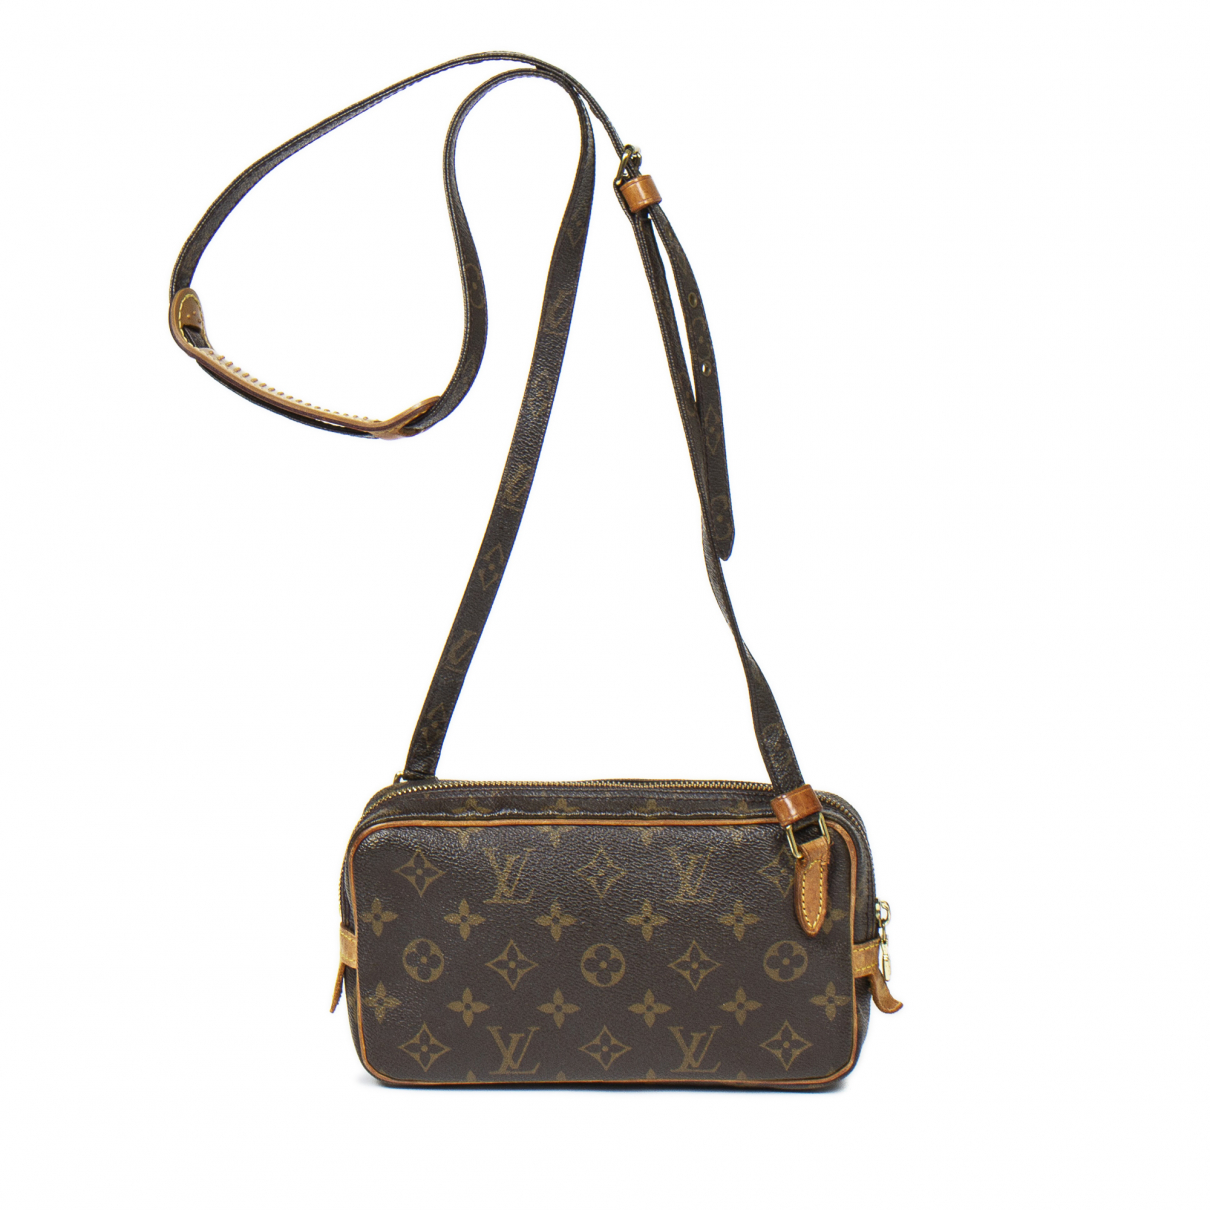 Louis Vuitton - Sac a main Marly pour femme en coton - marron